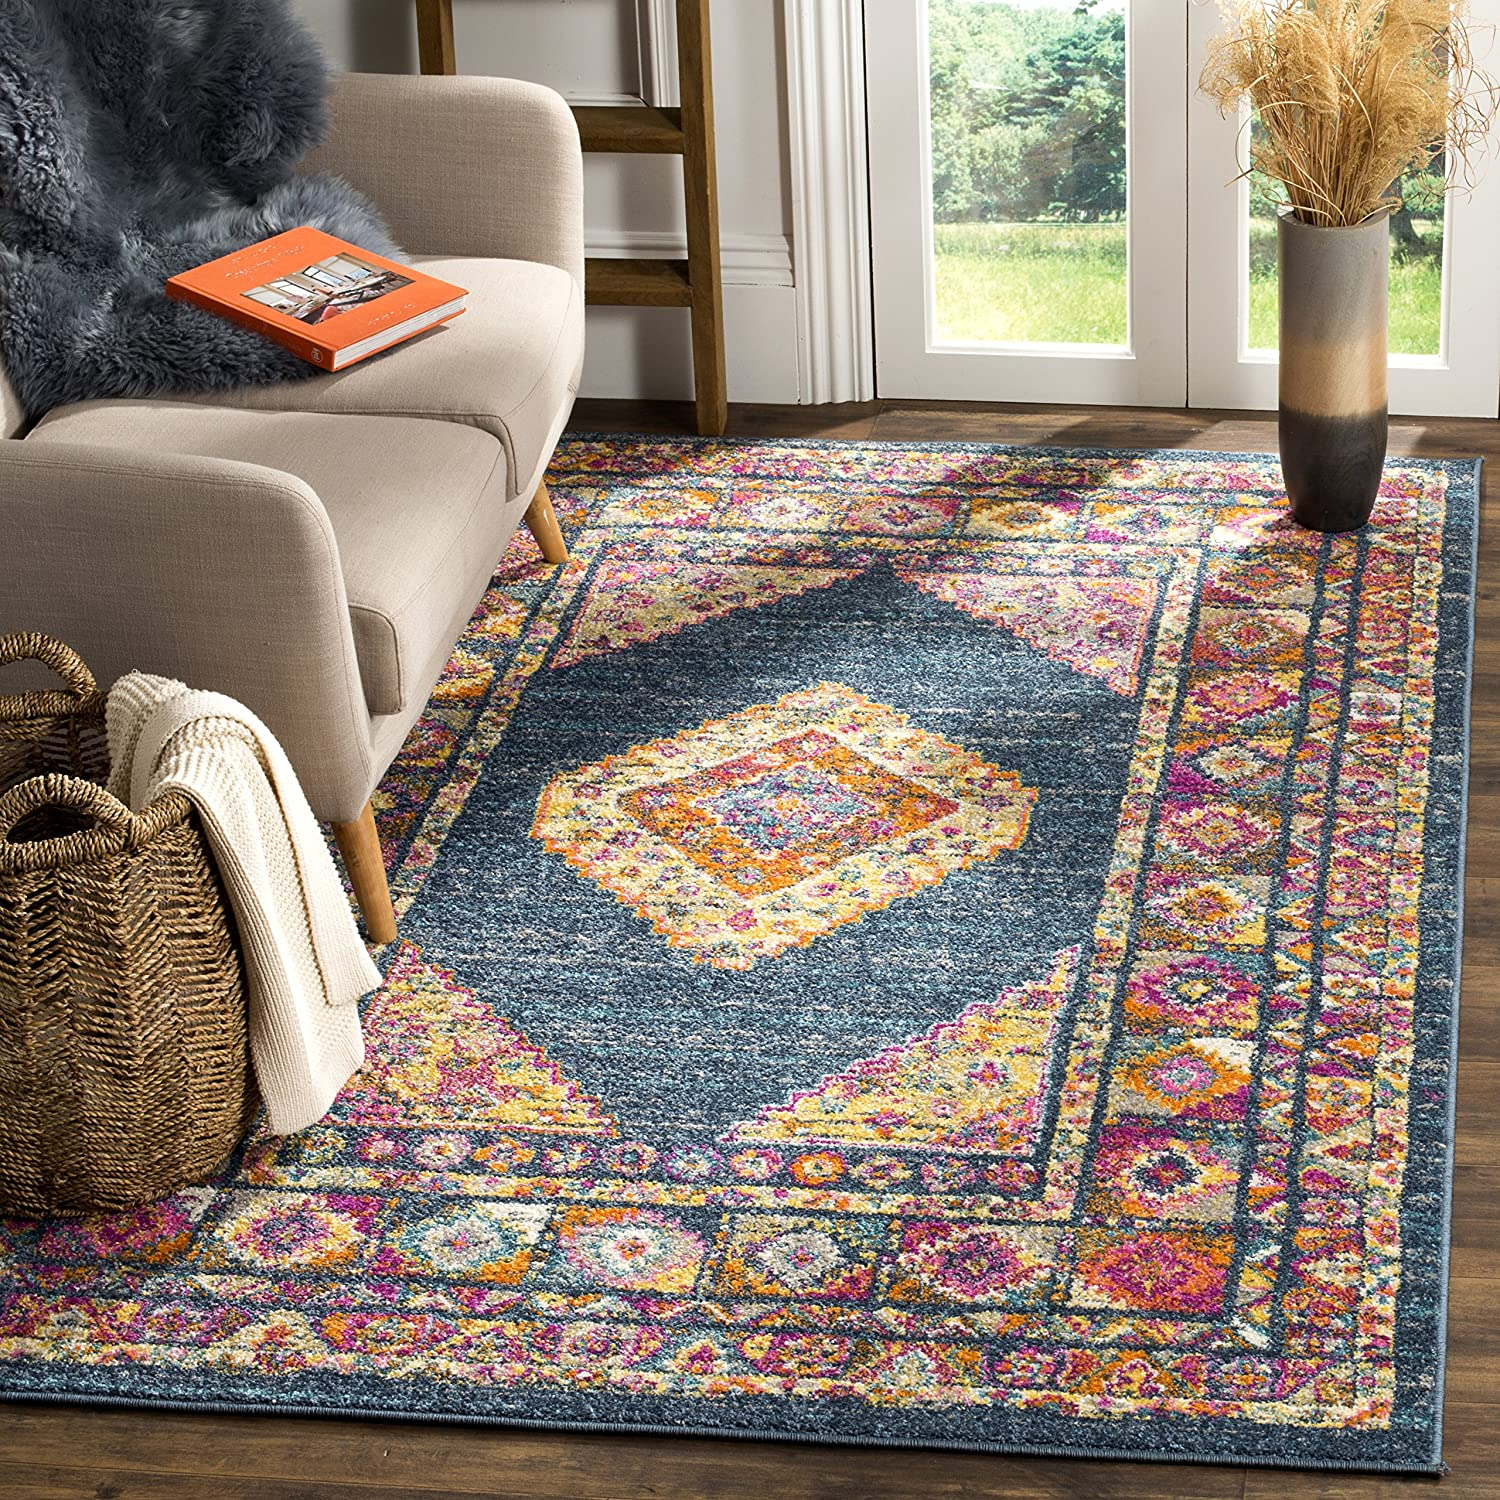 Safavieh Madison Collection MAD133C Non-Shed Max 81% OFF Chic Boho Max 59% OFF Medallion